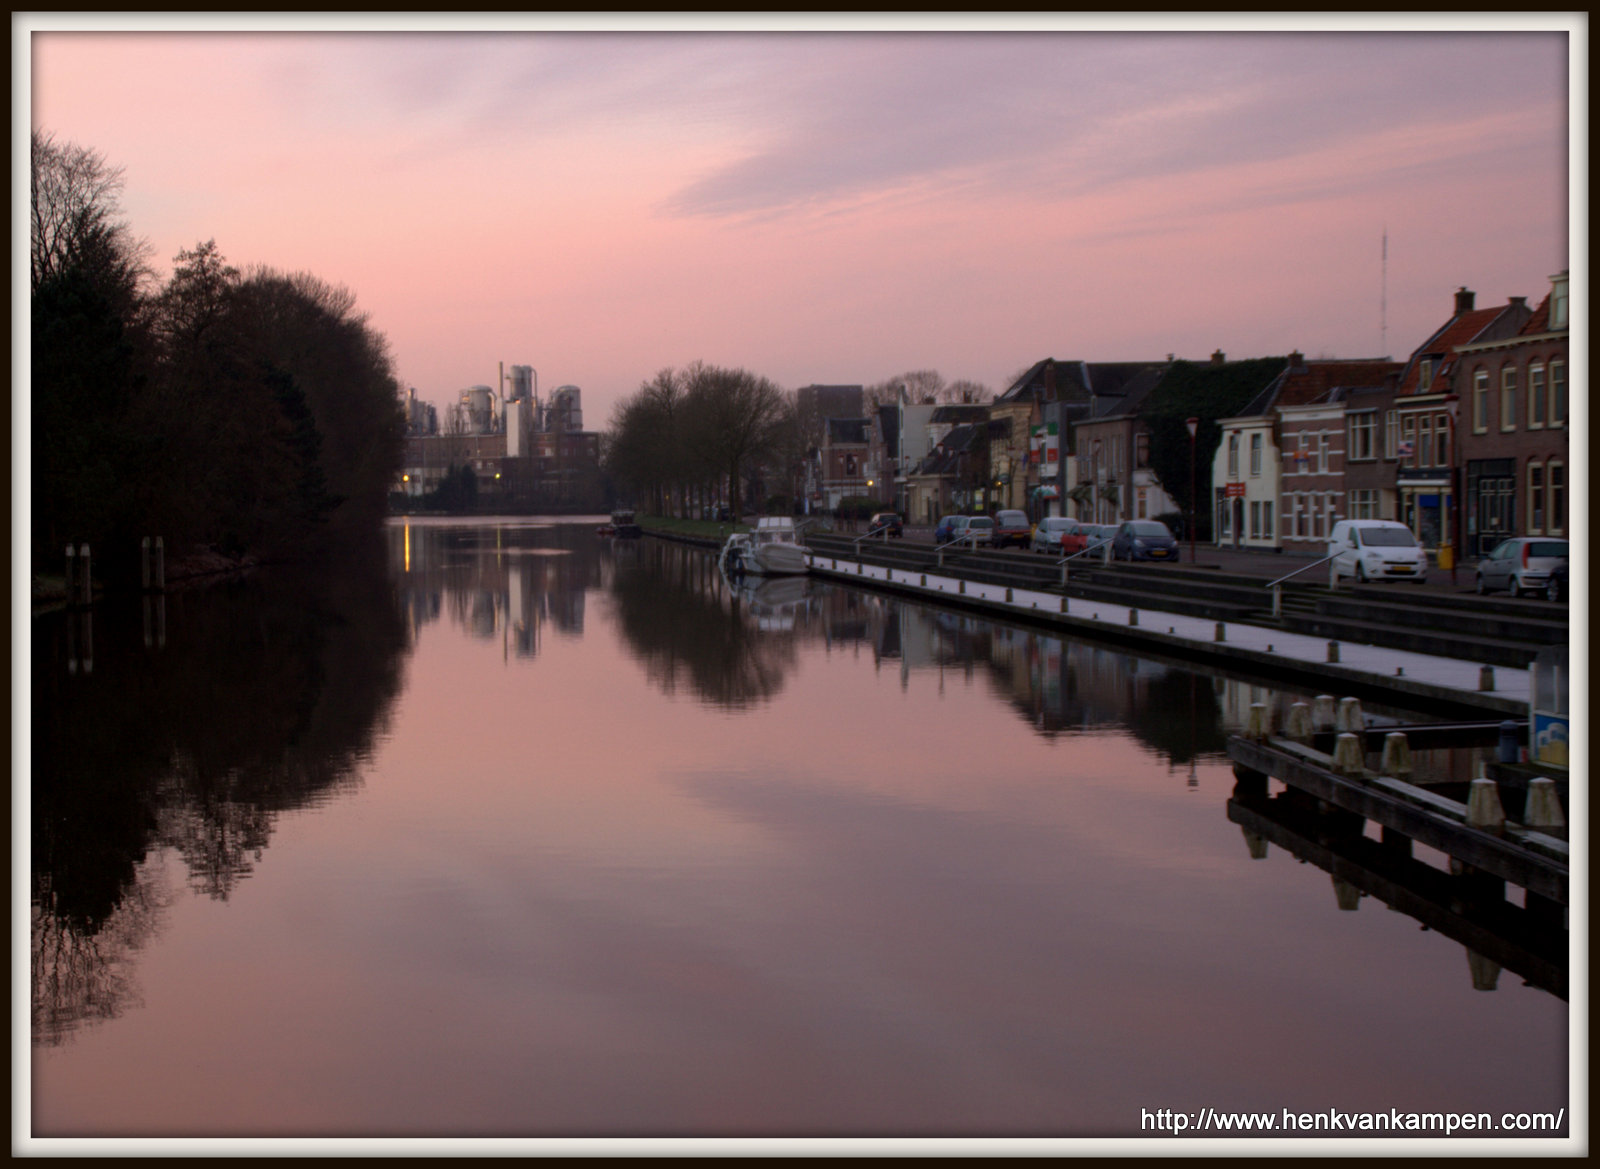 The Merwede Canal in Nieuwegein at sunrise